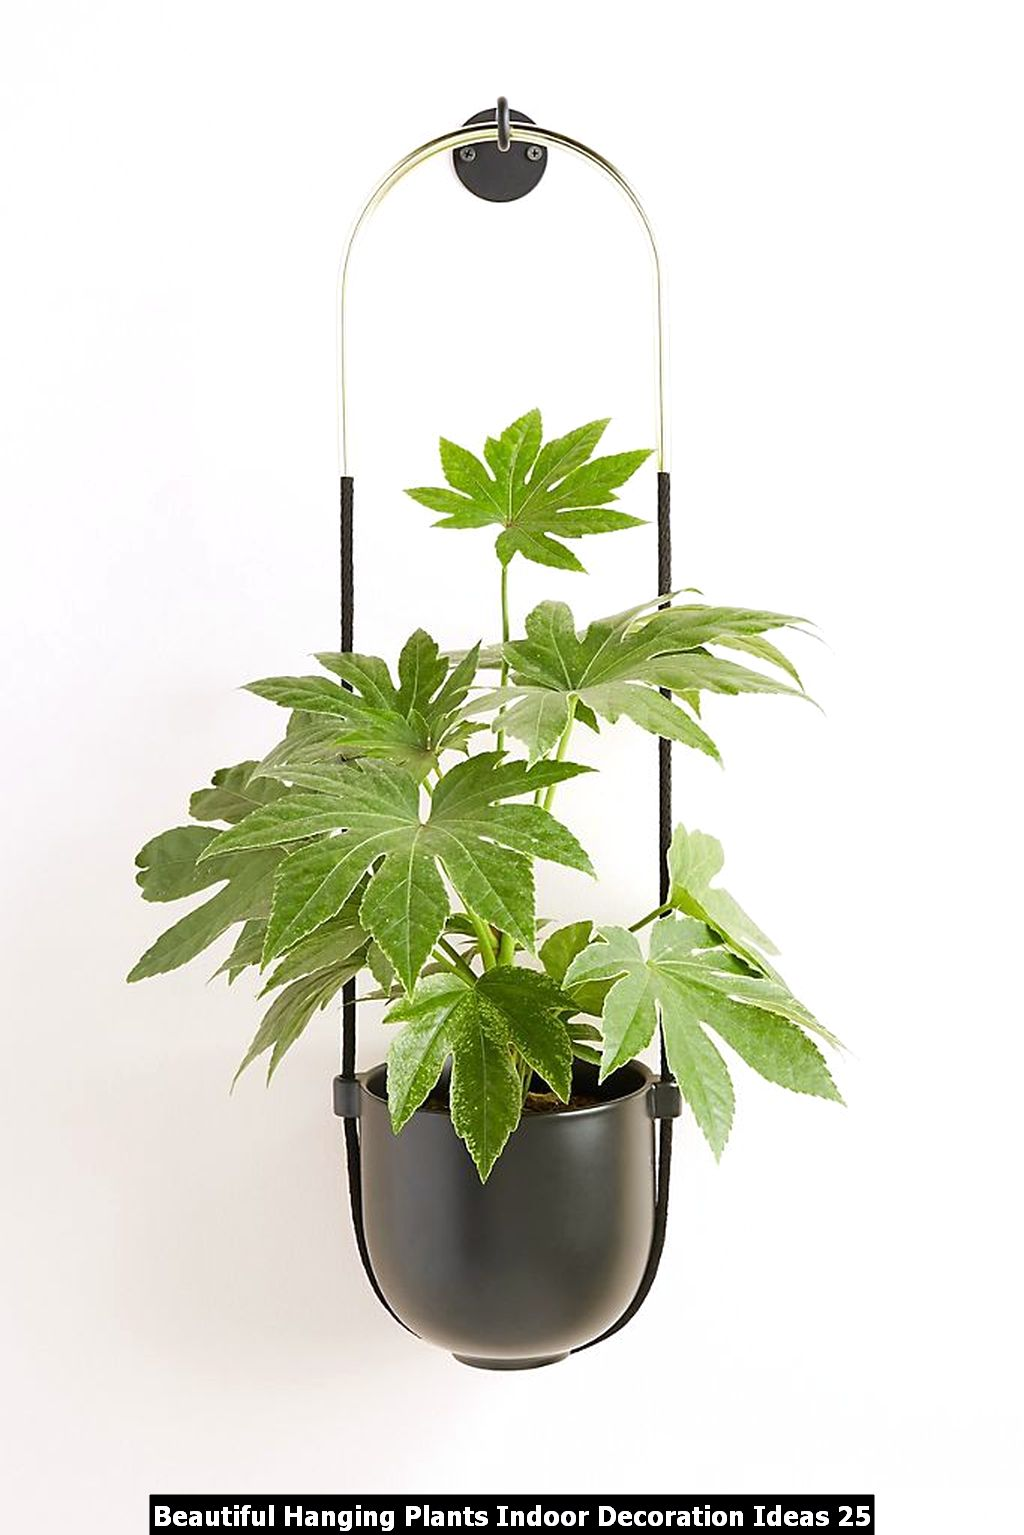 Beautiful Hanging Plants Indoor Decoration Ideas 25